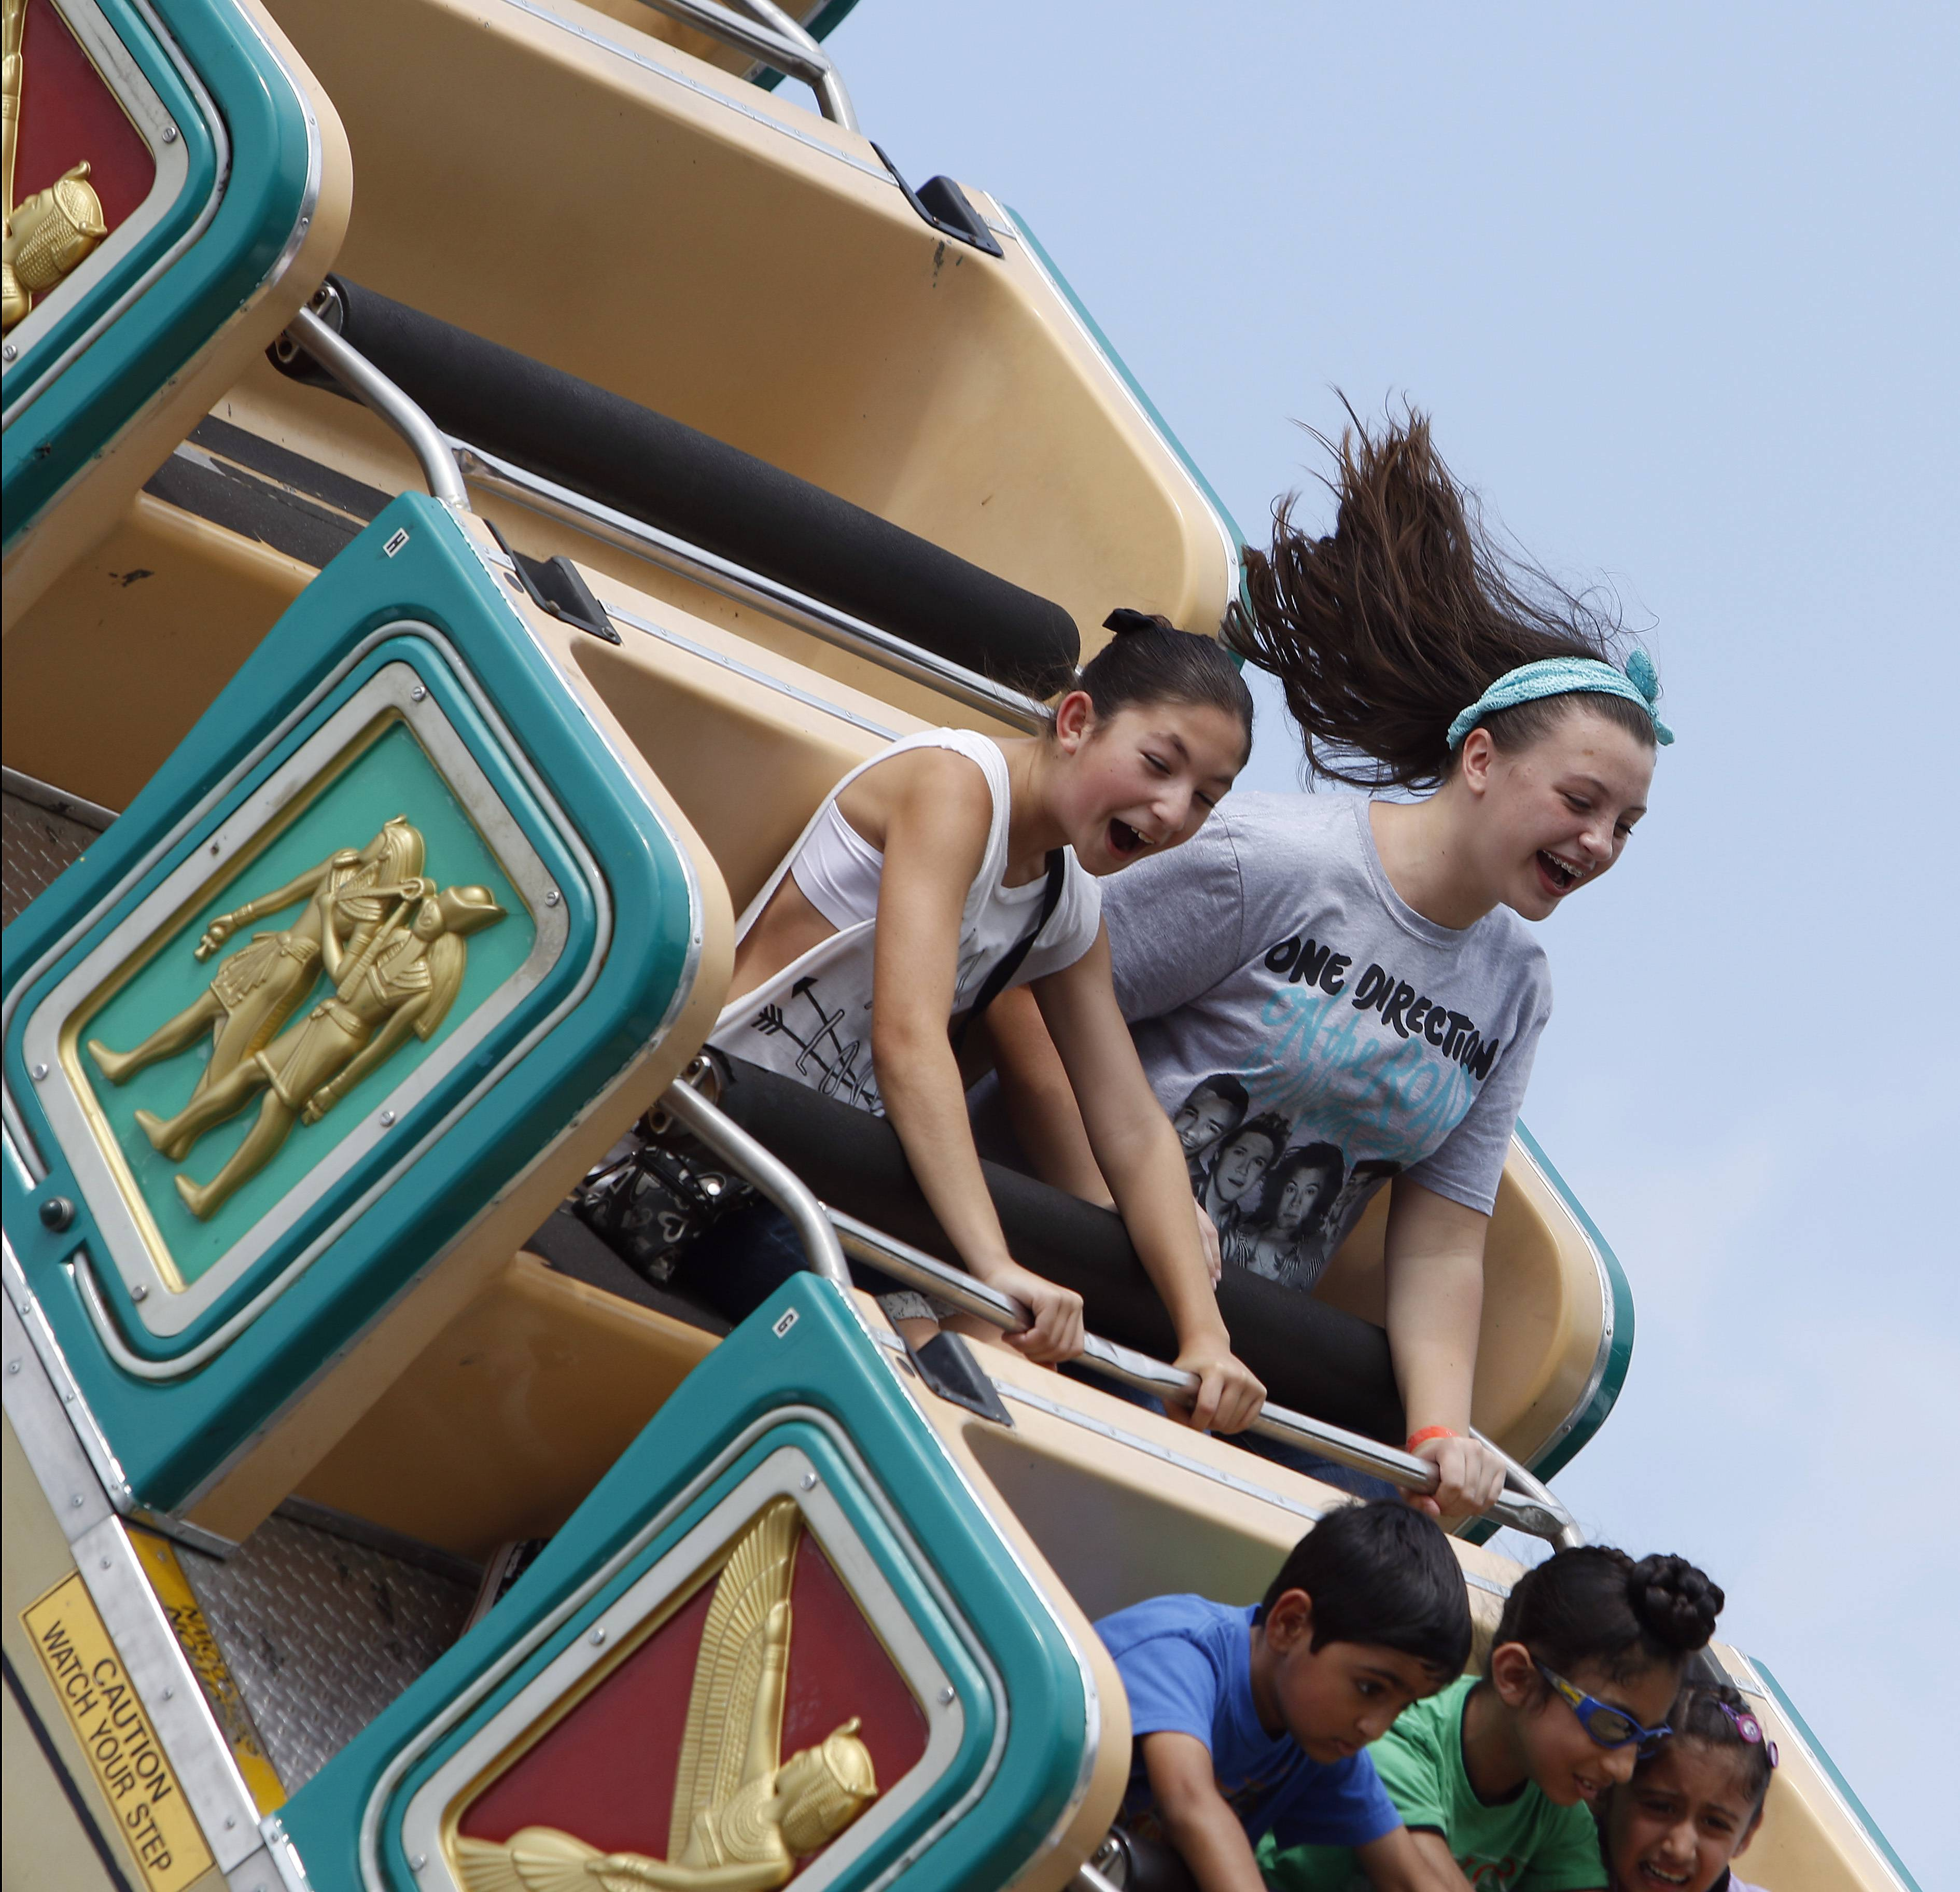 Raelyn Scollard, 12, right, and Cassidy Morisco, 11, both of Schaumburg scream their way through a ride on the Pharaoh's Furry Saturday during the three-day Septemberfest in Schaumburg.